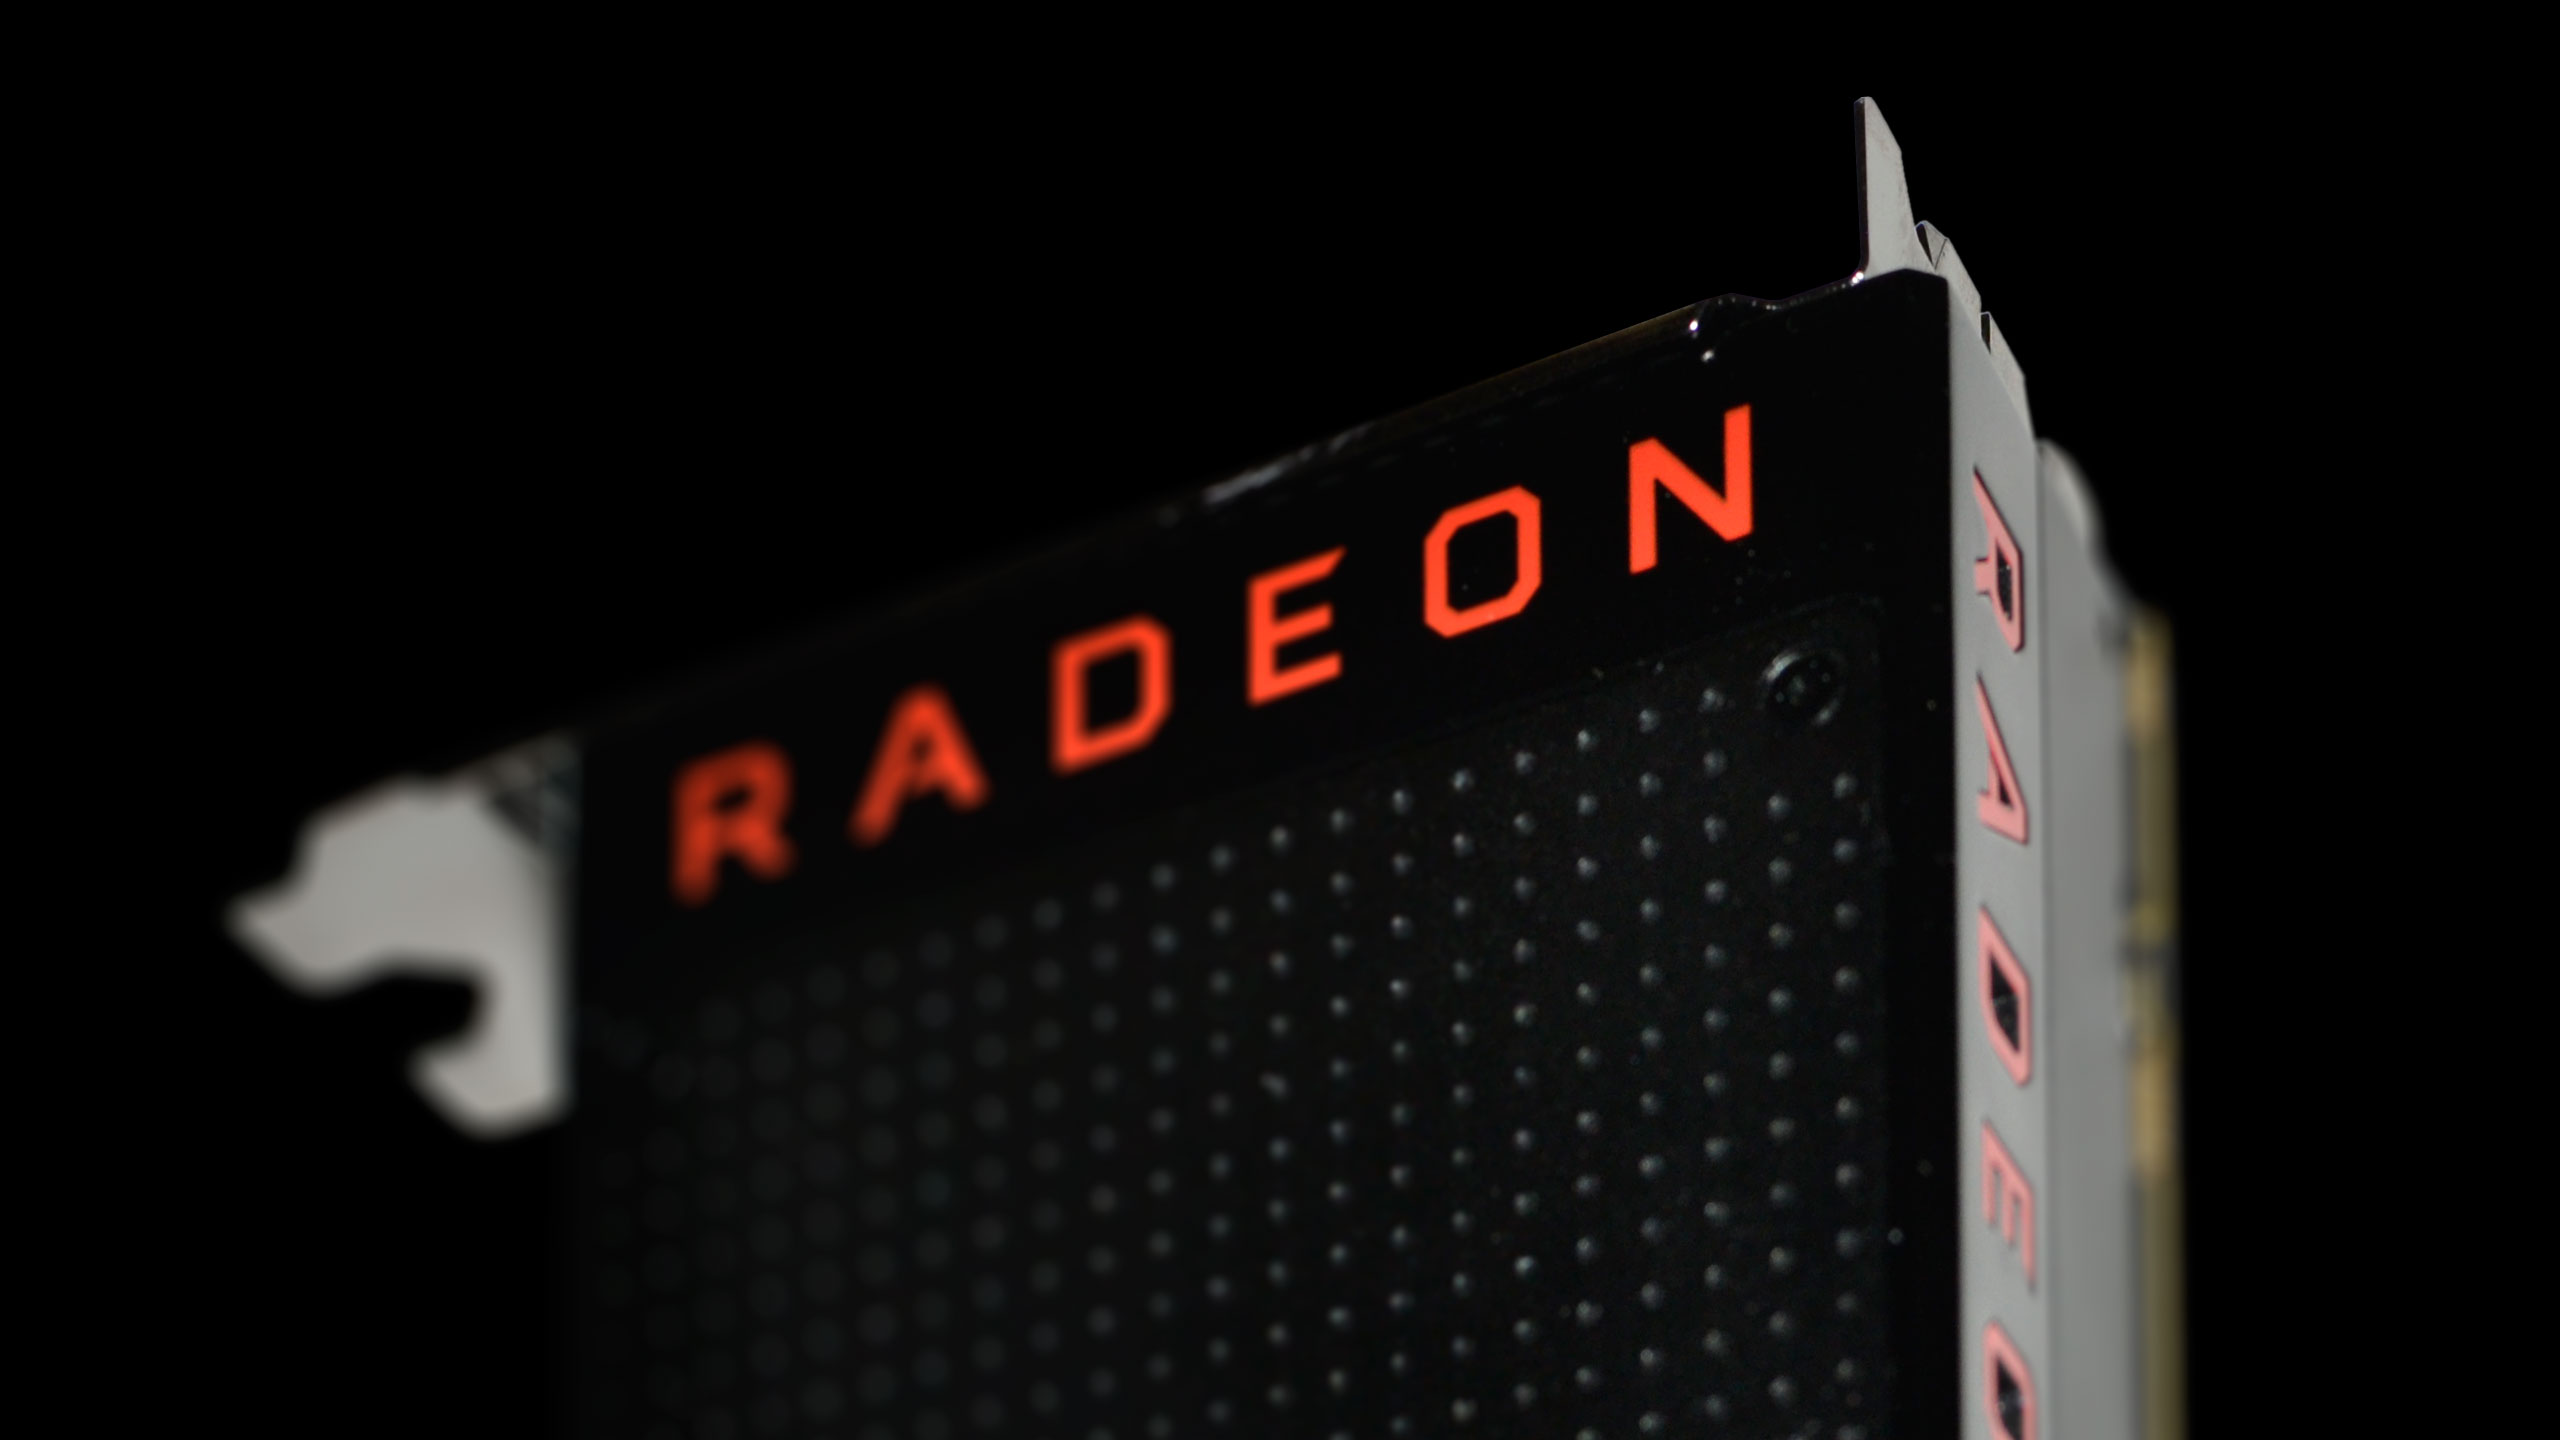 Amd Radeon Rx Vega 64 Review Pc Gamer